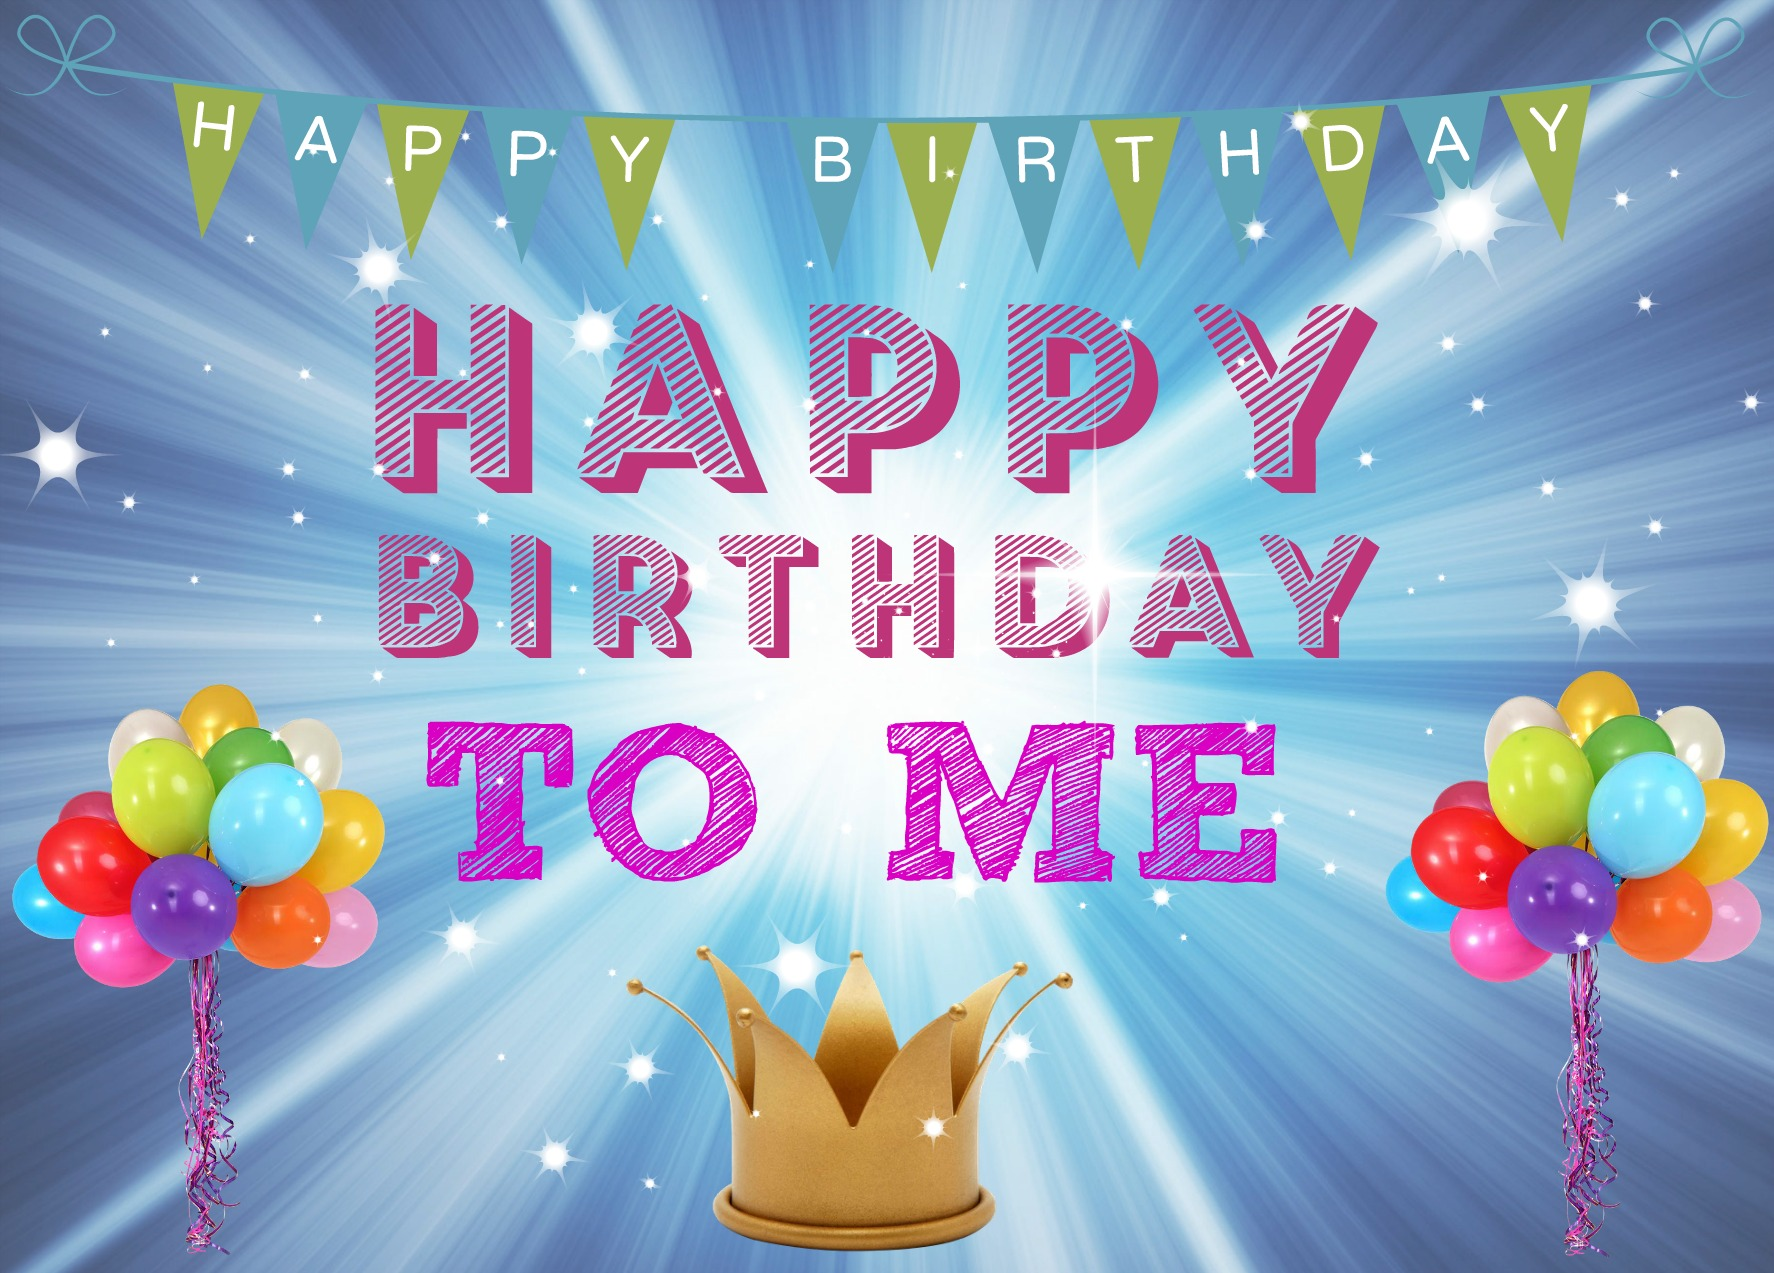 40 THINGS ABOUT ME: Today is my Birthday!